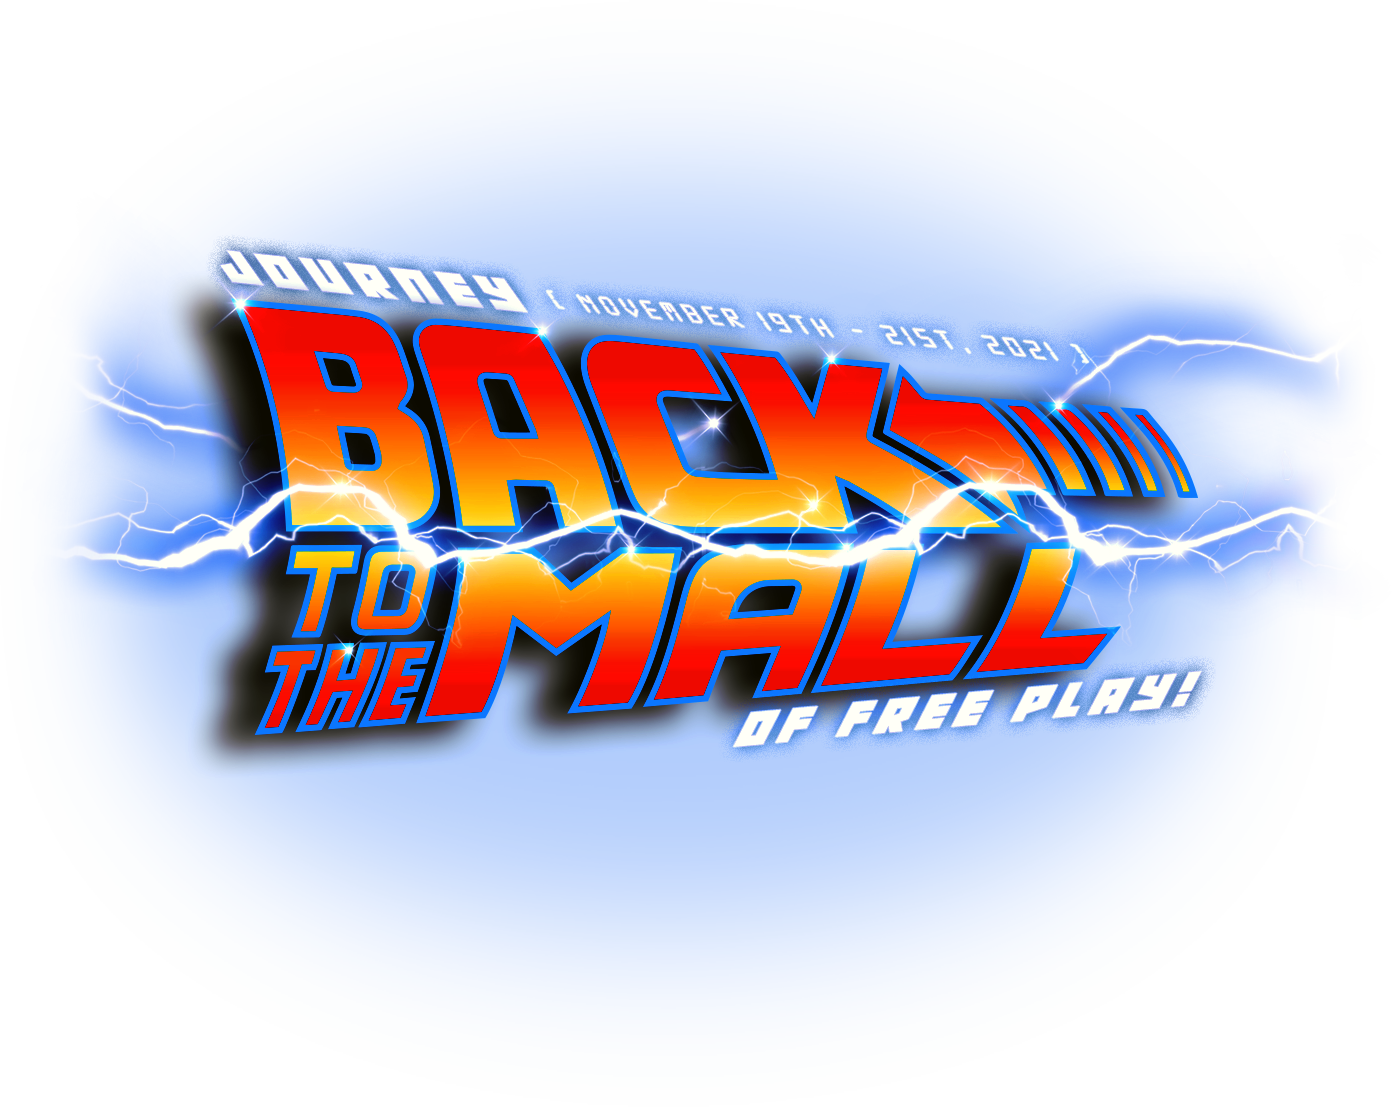 Back to the Mall themed logo for the 2021 Free Play Florida Show!